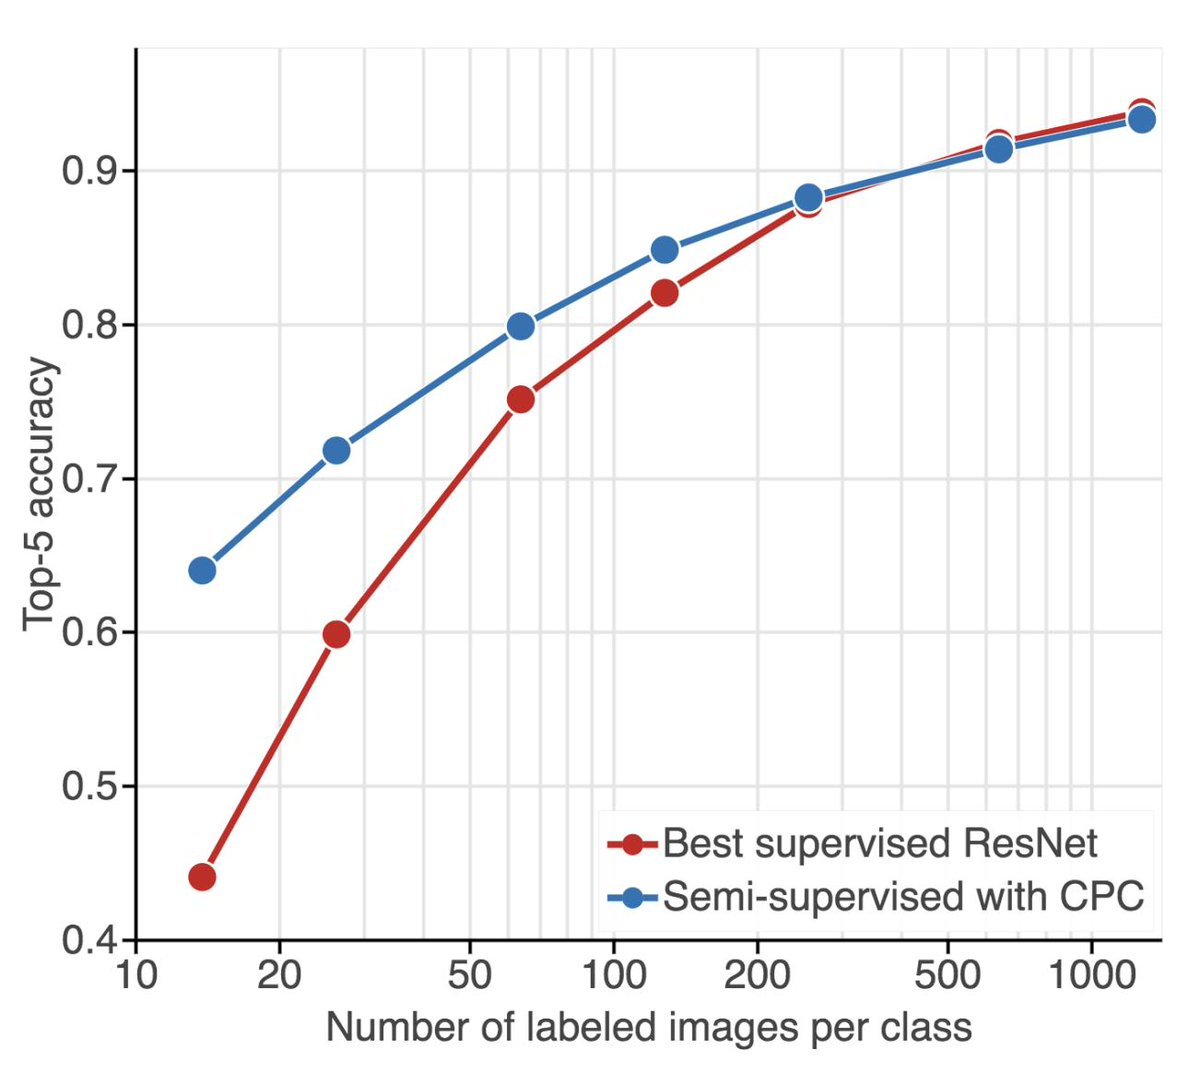 Excited to share our latest results on Contrastive Predictive Coding! -A linear classifier on CPC features yield 61% ACC, outperforming the original AlexNet result with unsupervised learning. -New state of the art in semi-supervised learning w 1% labels.  https:// arxiv.org/abs/1905.09272  &nbsp;  <br>http://pic.twitter.com/01pWjkTxsW